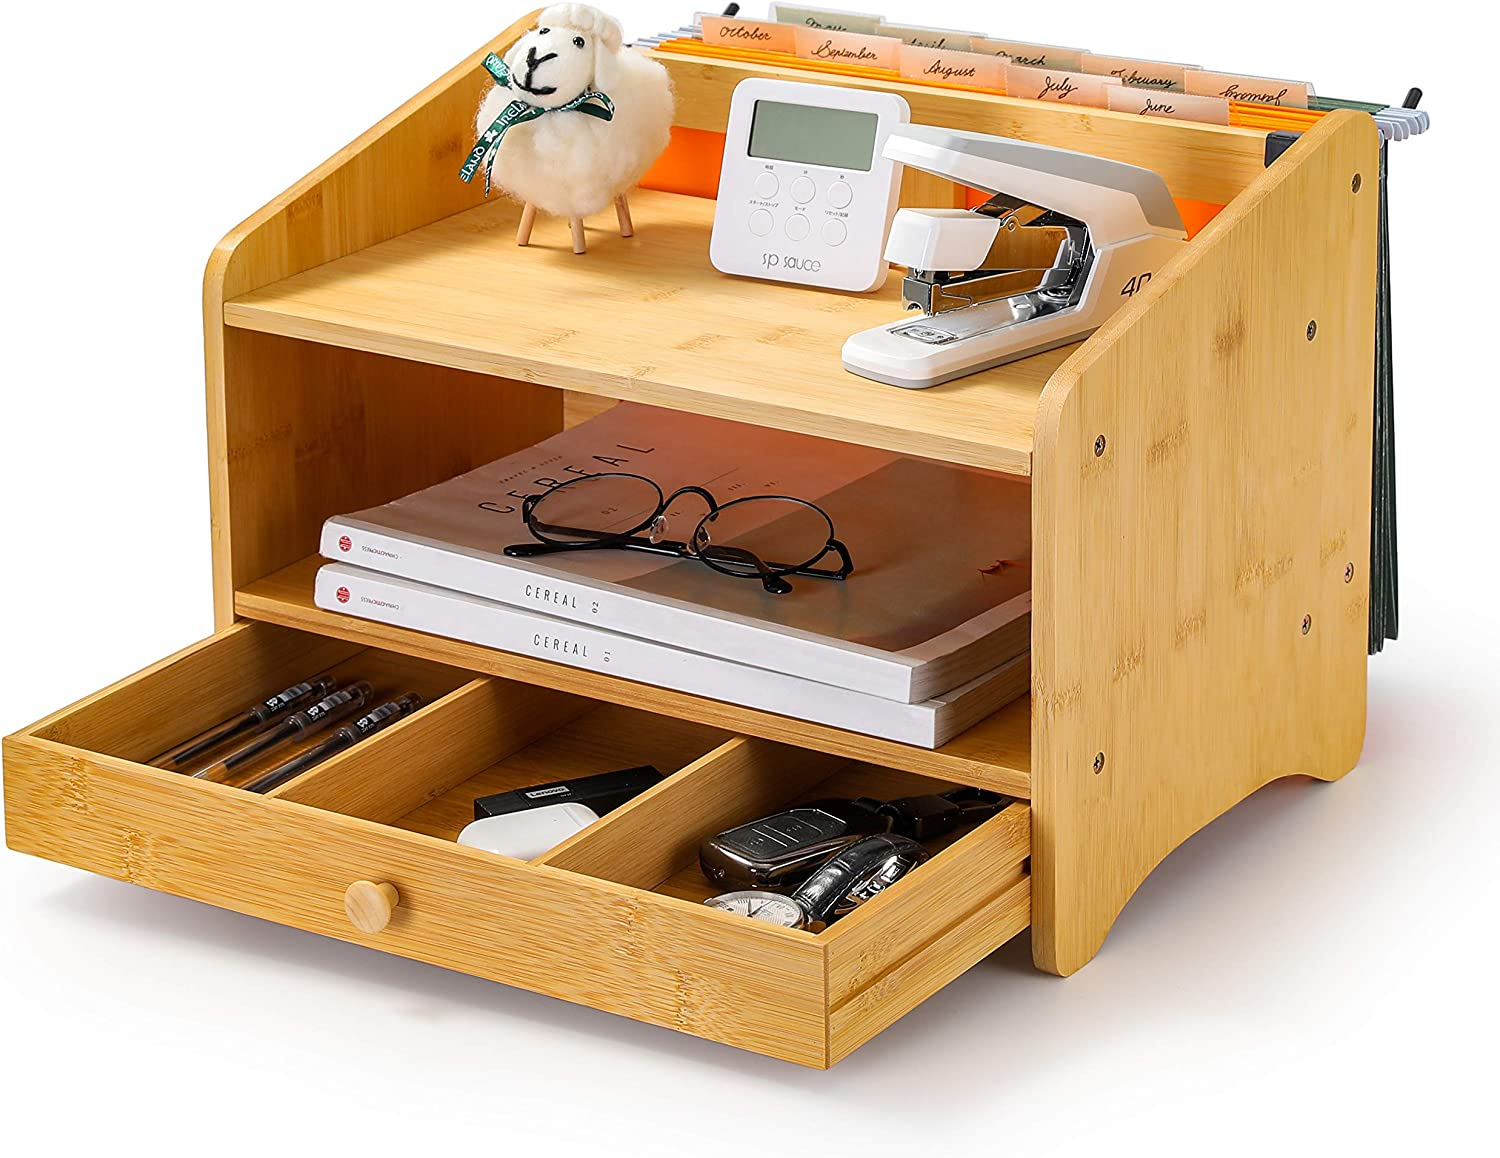 Homerays Bamboo Desk Organizer Wood Desktop Storage 3 Tier Table Top Storage for Pencils, Notepads, Documents & Office Supplies (Bamboo Primary Color)